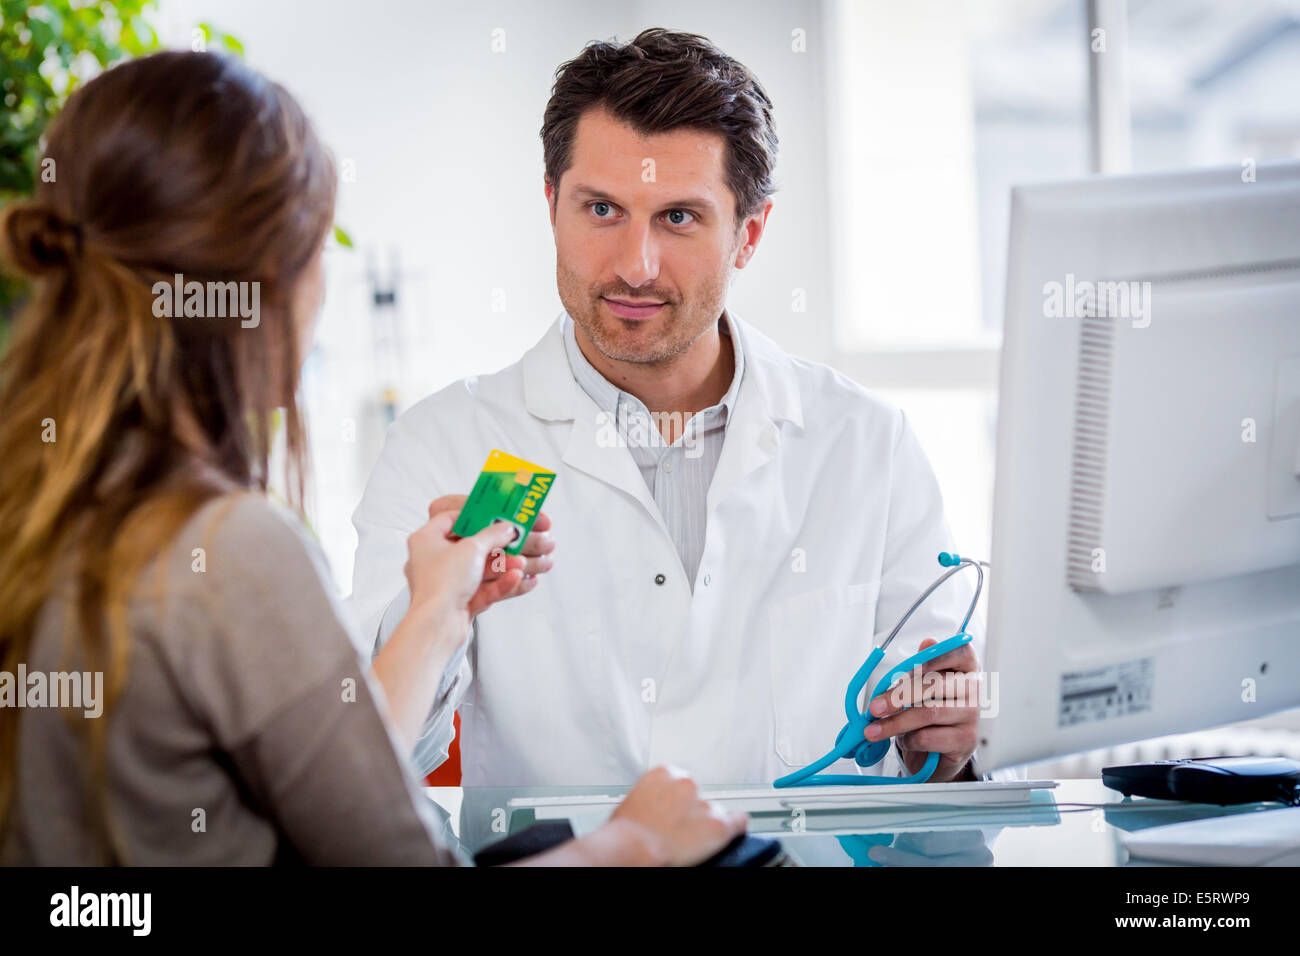 Doctor using the health card of a patient after consultation, The social insurance identity card holds all the administrative - Stock Image